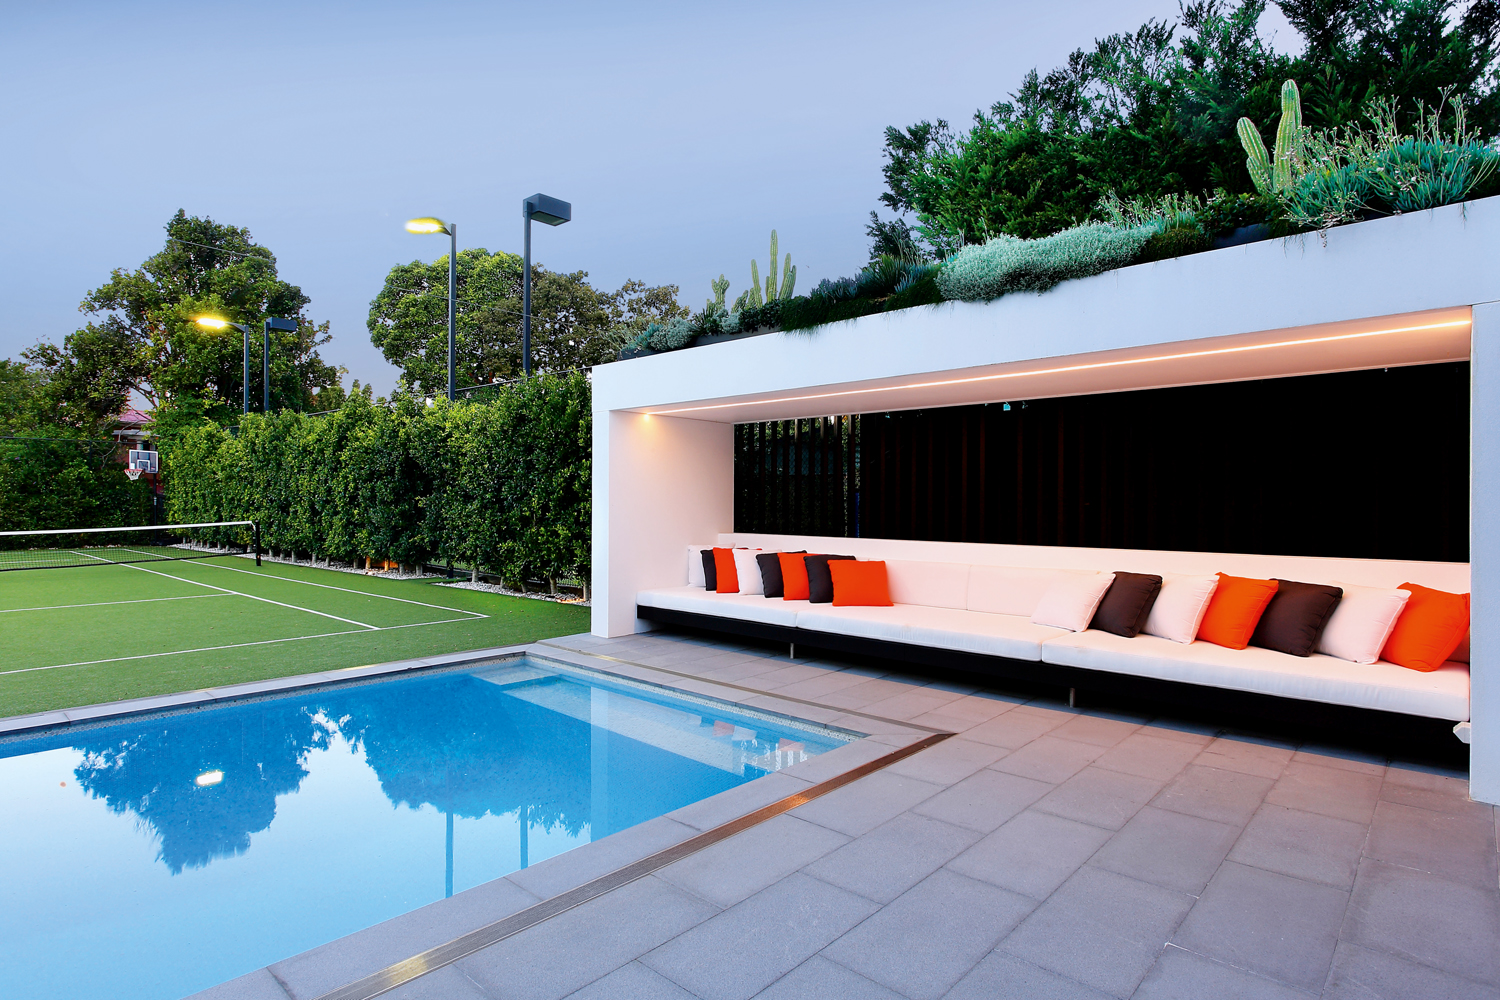 An award-winning outdoor space fusing formal and modern design